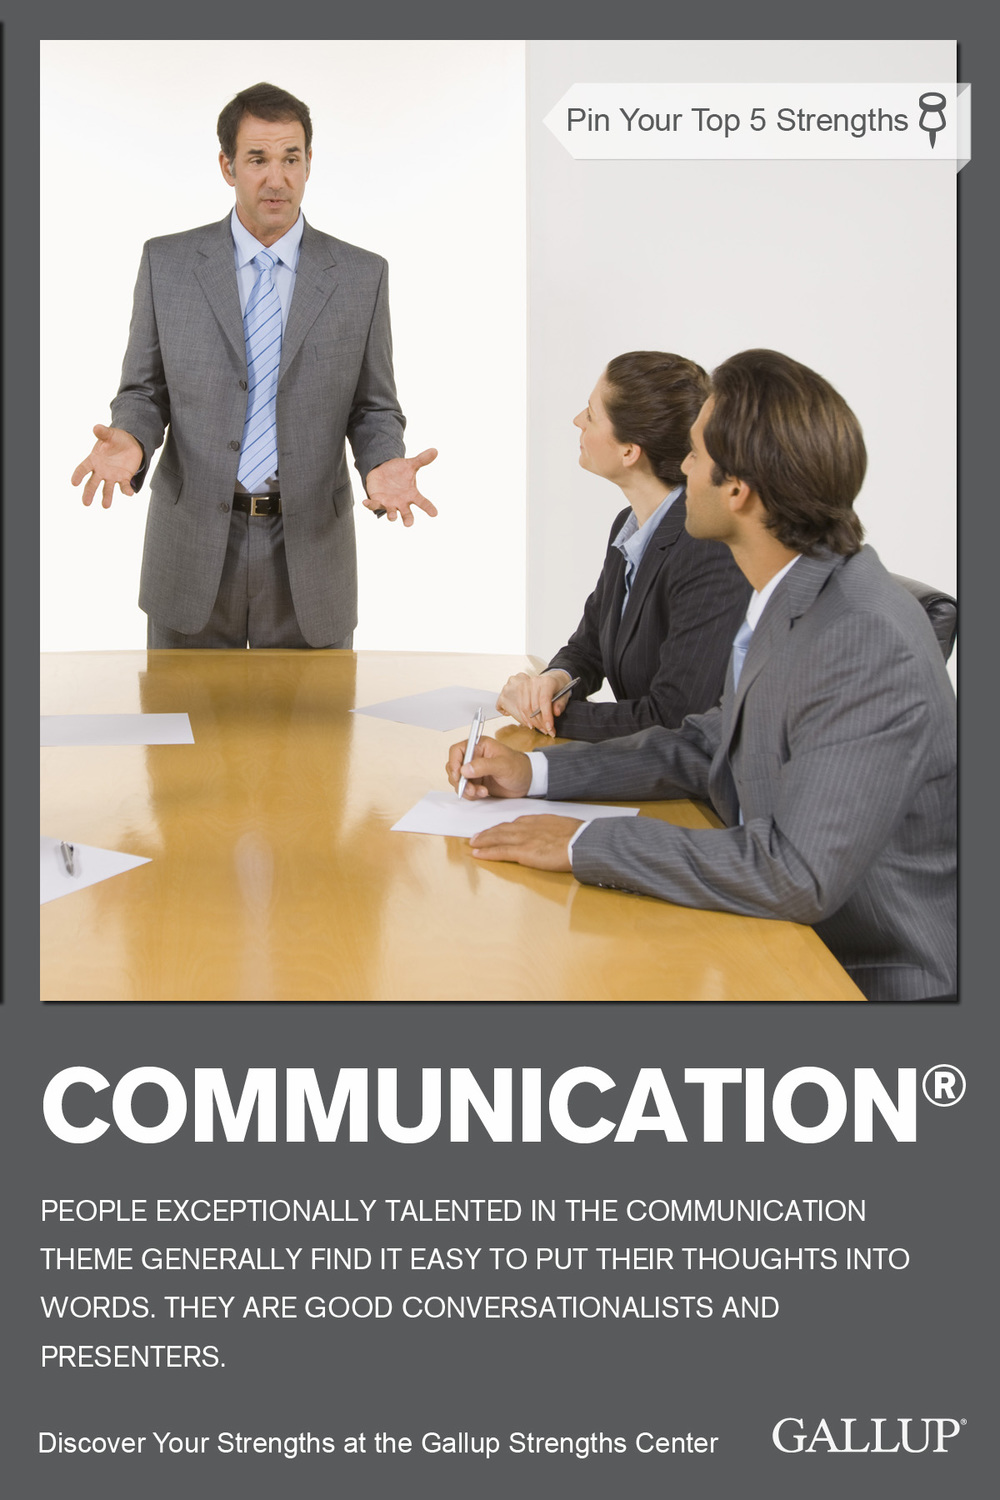 Communication Strengths School StrengthsFinder Singapore.jpg